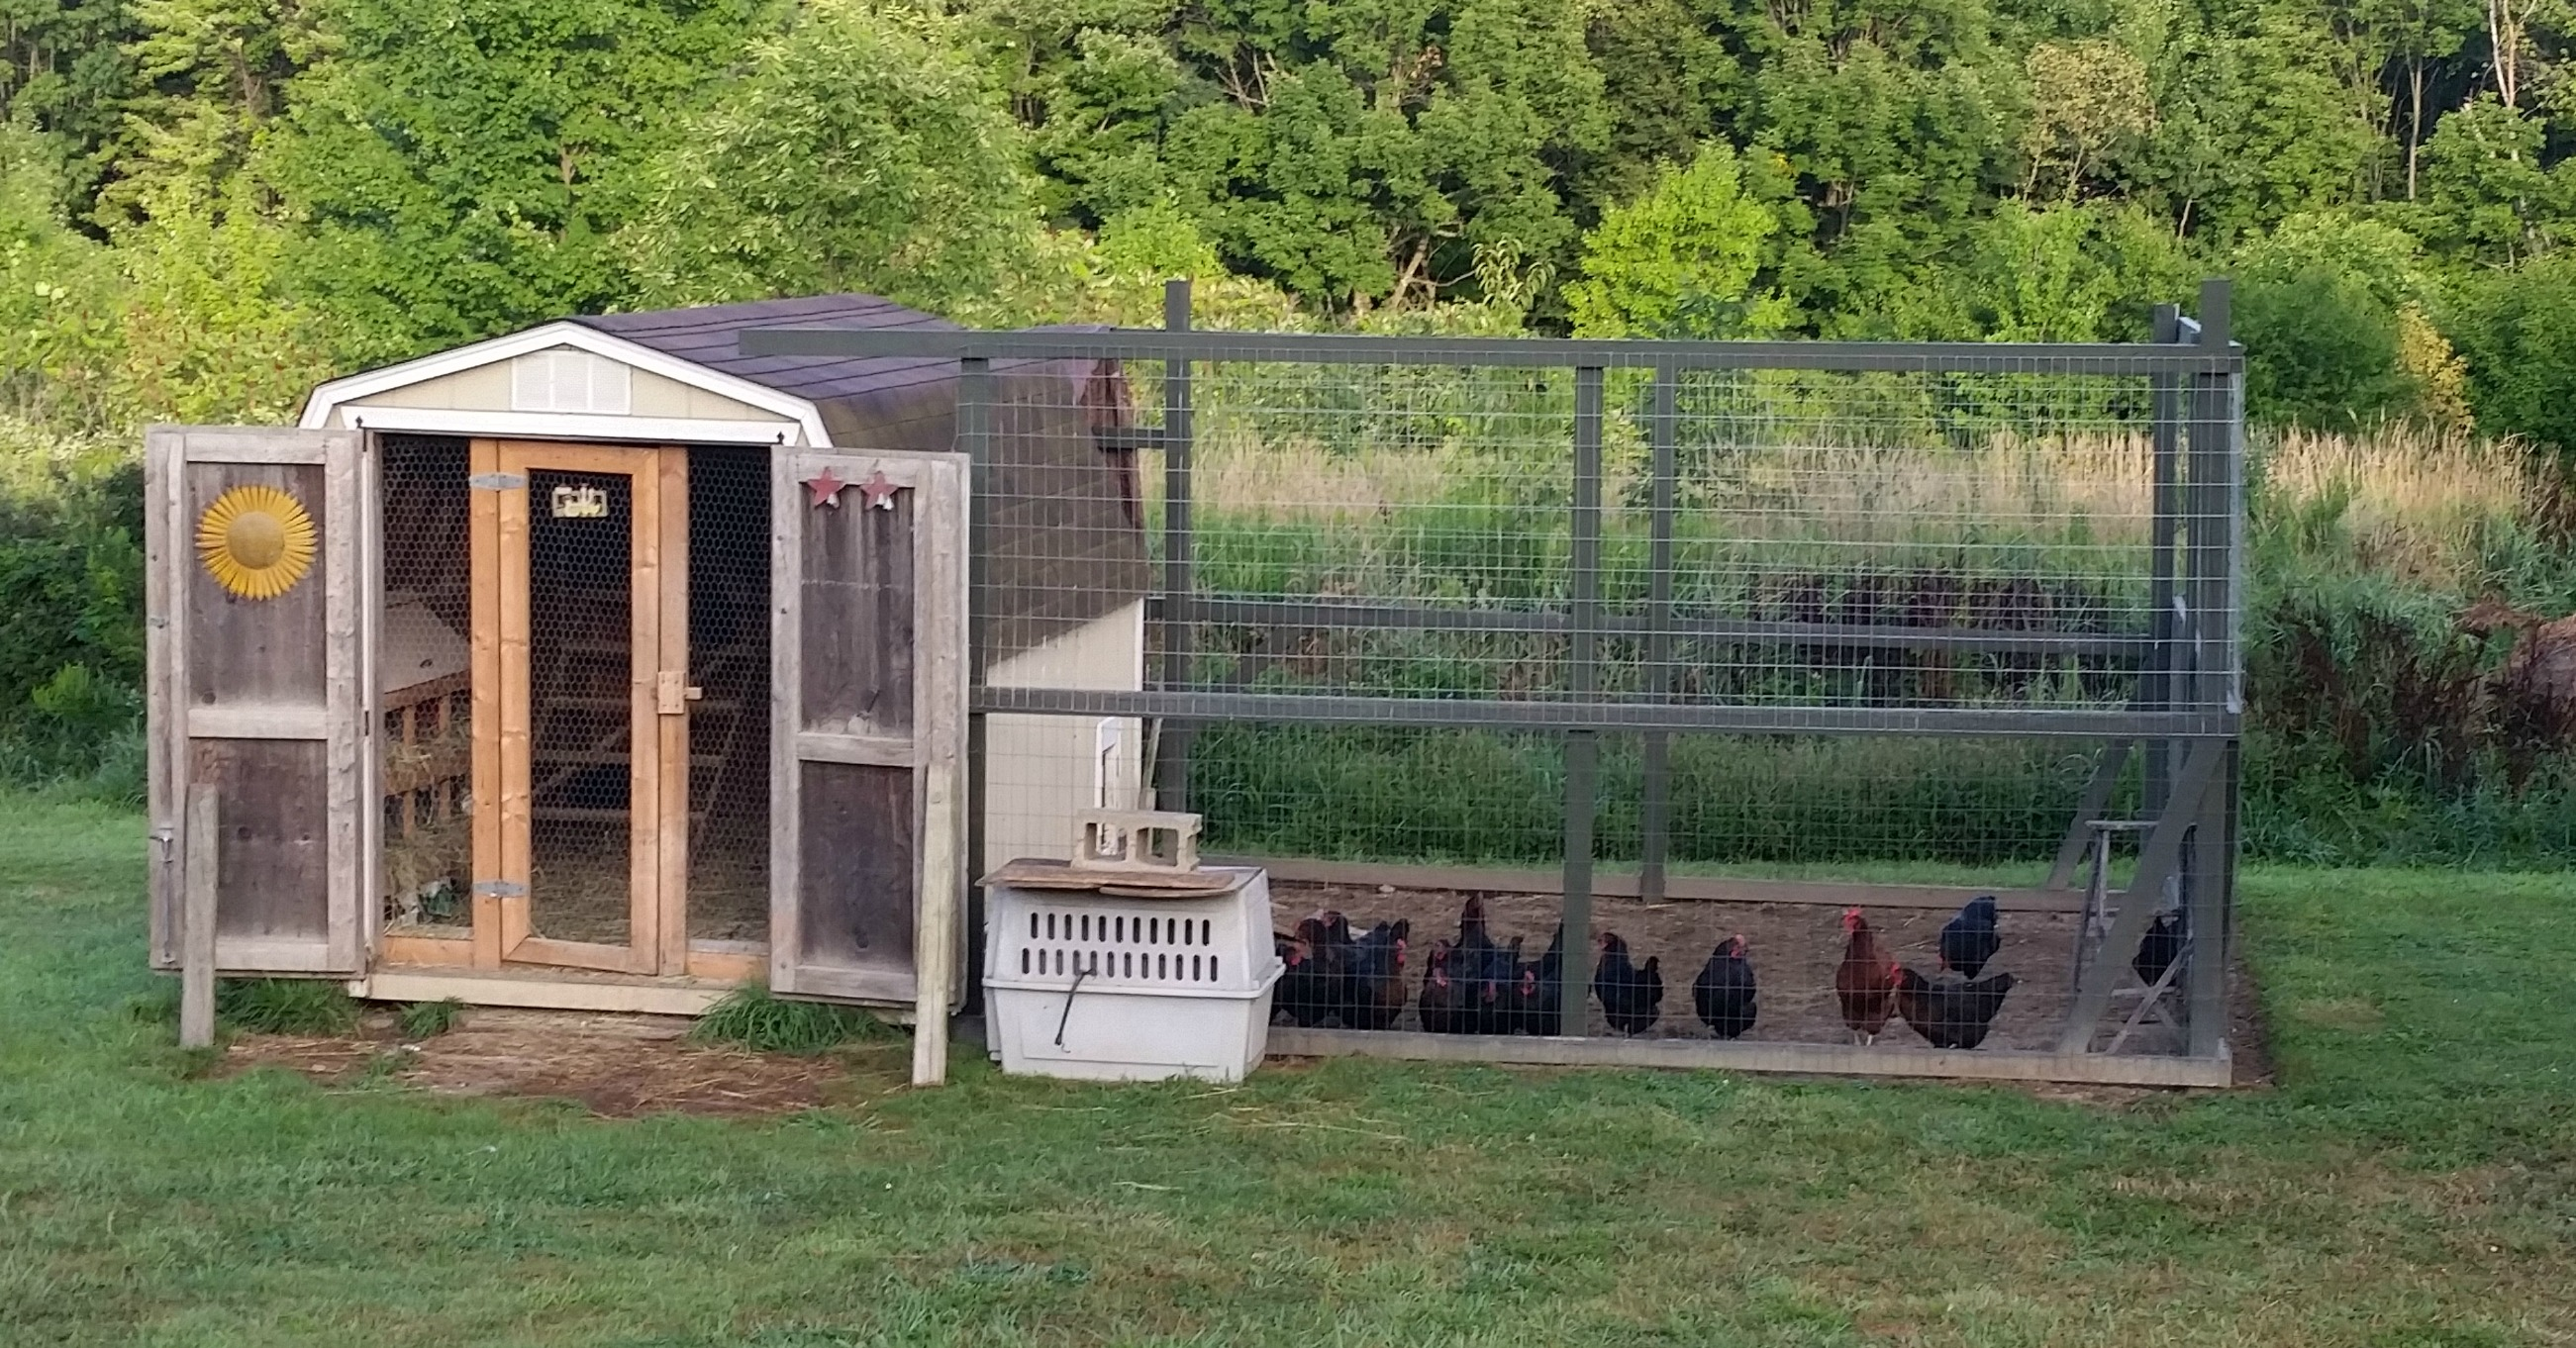 How Much Is A Modular Home Converting A Shed Into A Chicken Coop